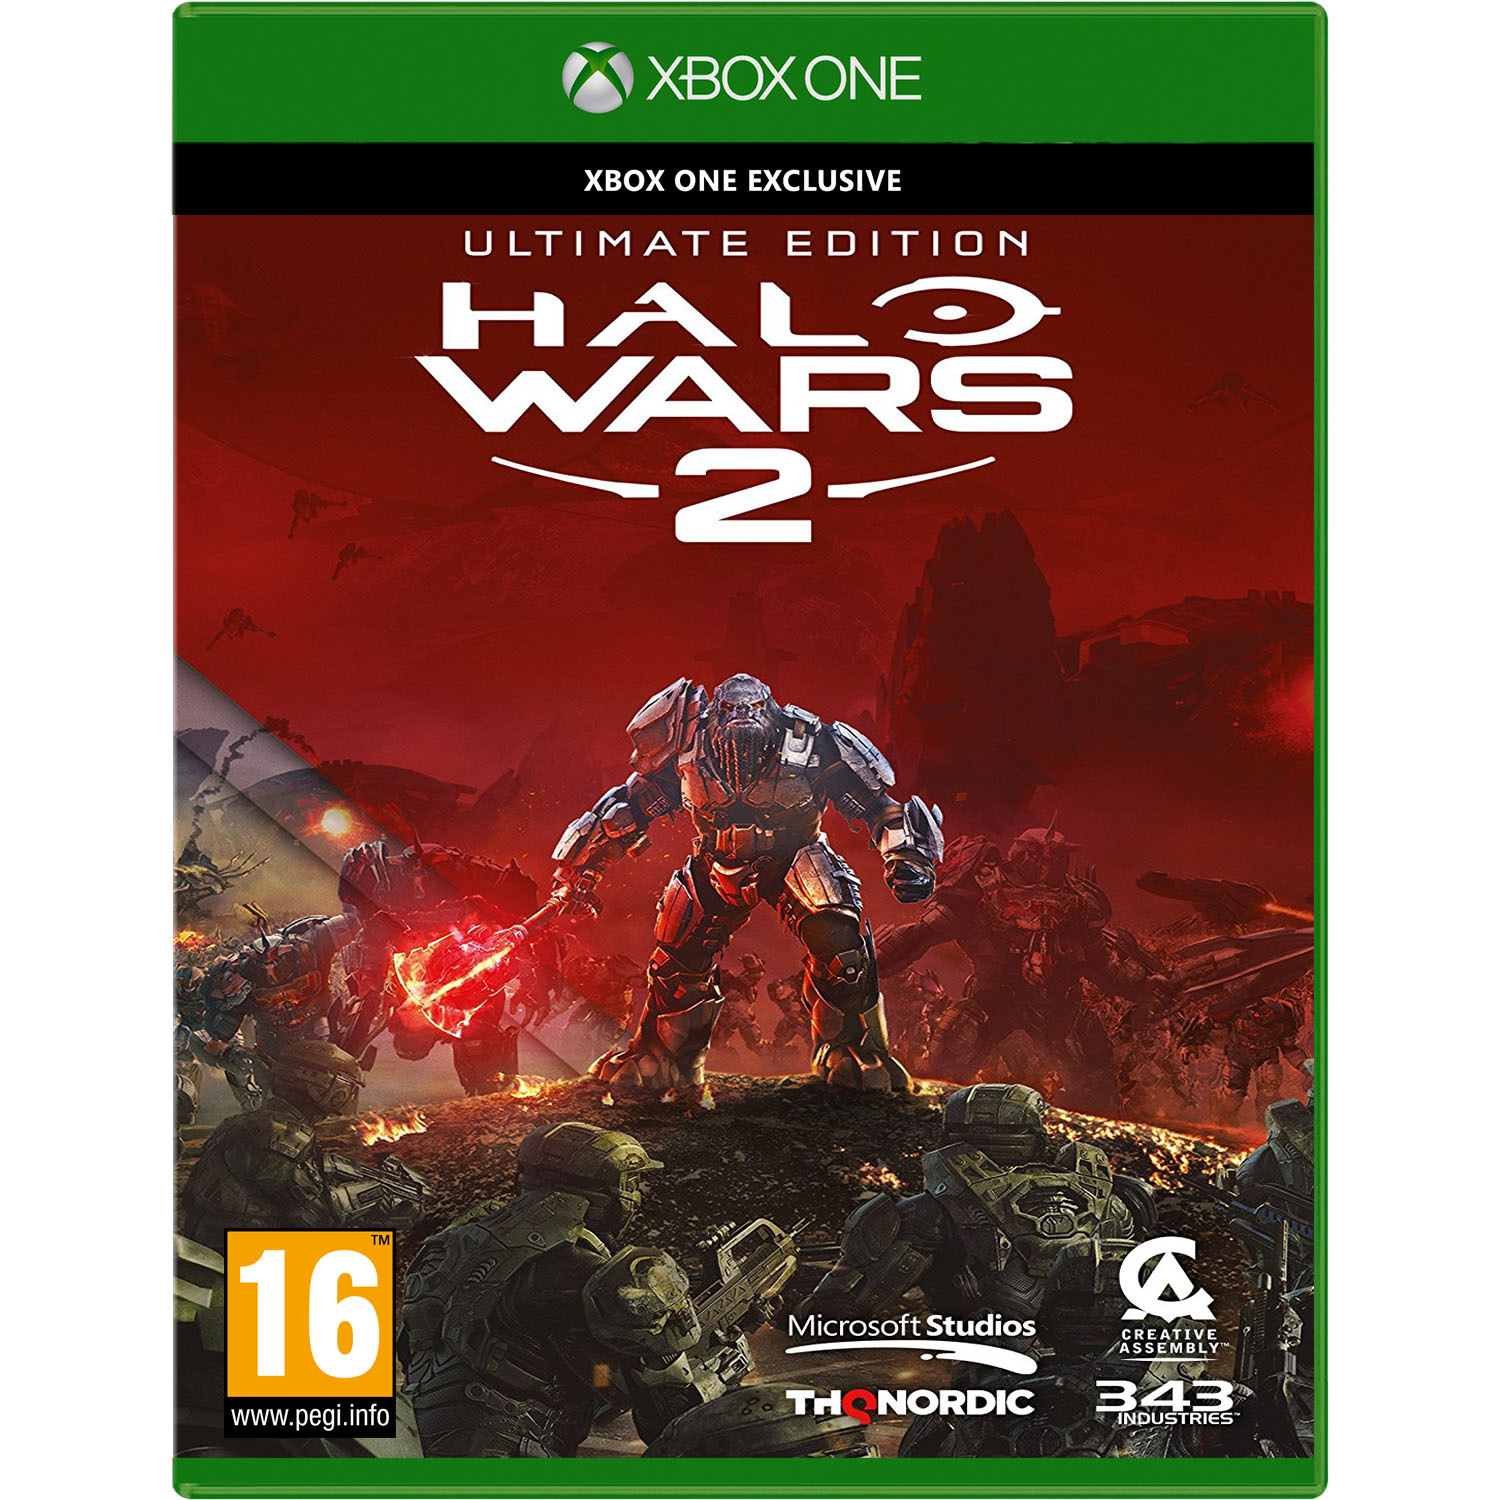 Игра Halo Wars 2 Ultimate Edition (Xbox One) sleeping dogs definitive edition игра для ps4